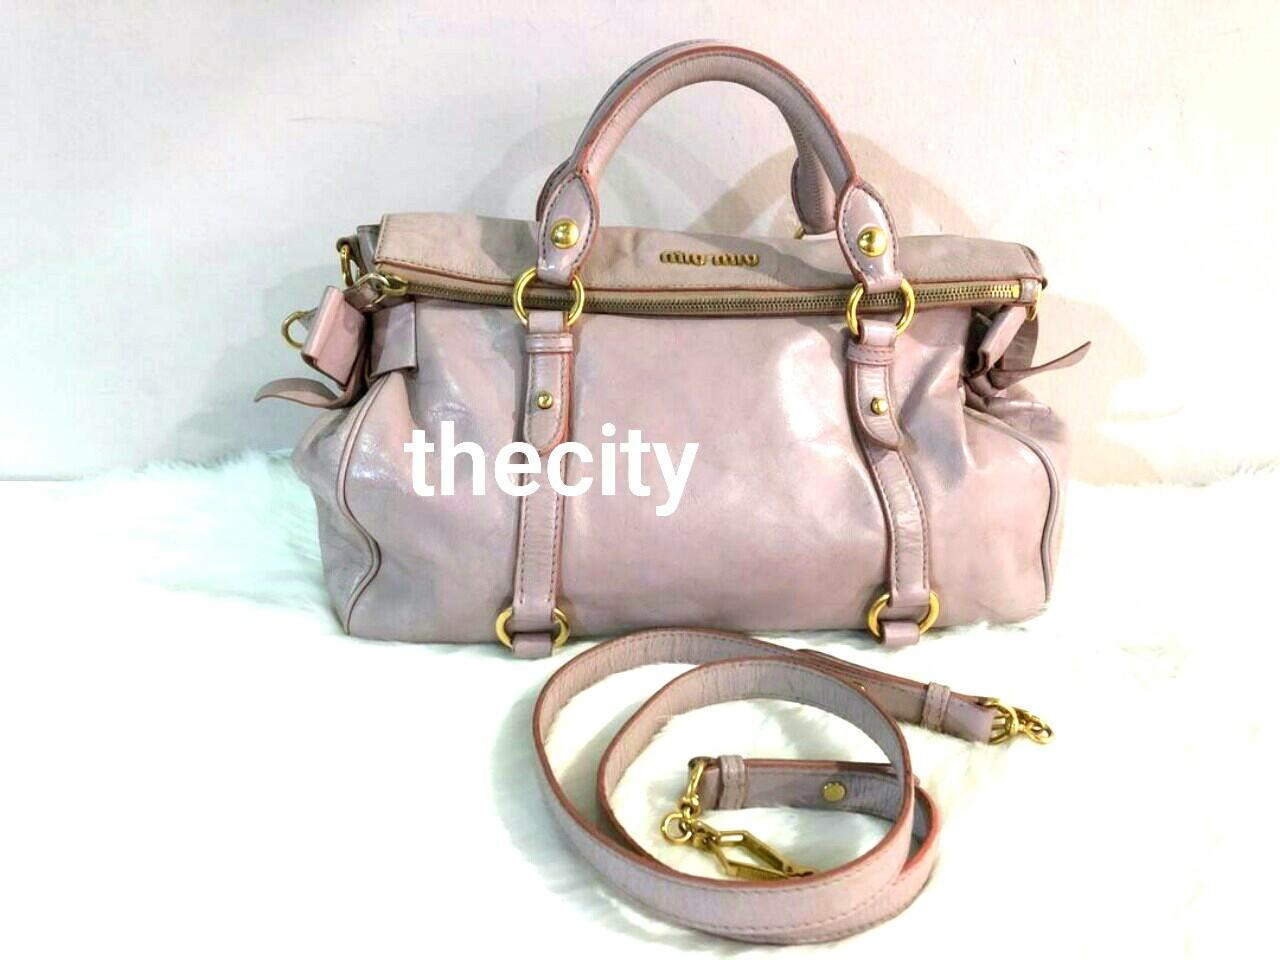 AUTHENTIC MIU MIU MEDIUM LEATHER BAG WITH ITS ORIGINAL LONG STRAP FOR CROSSBODY SLING - OVERALL GOOD !